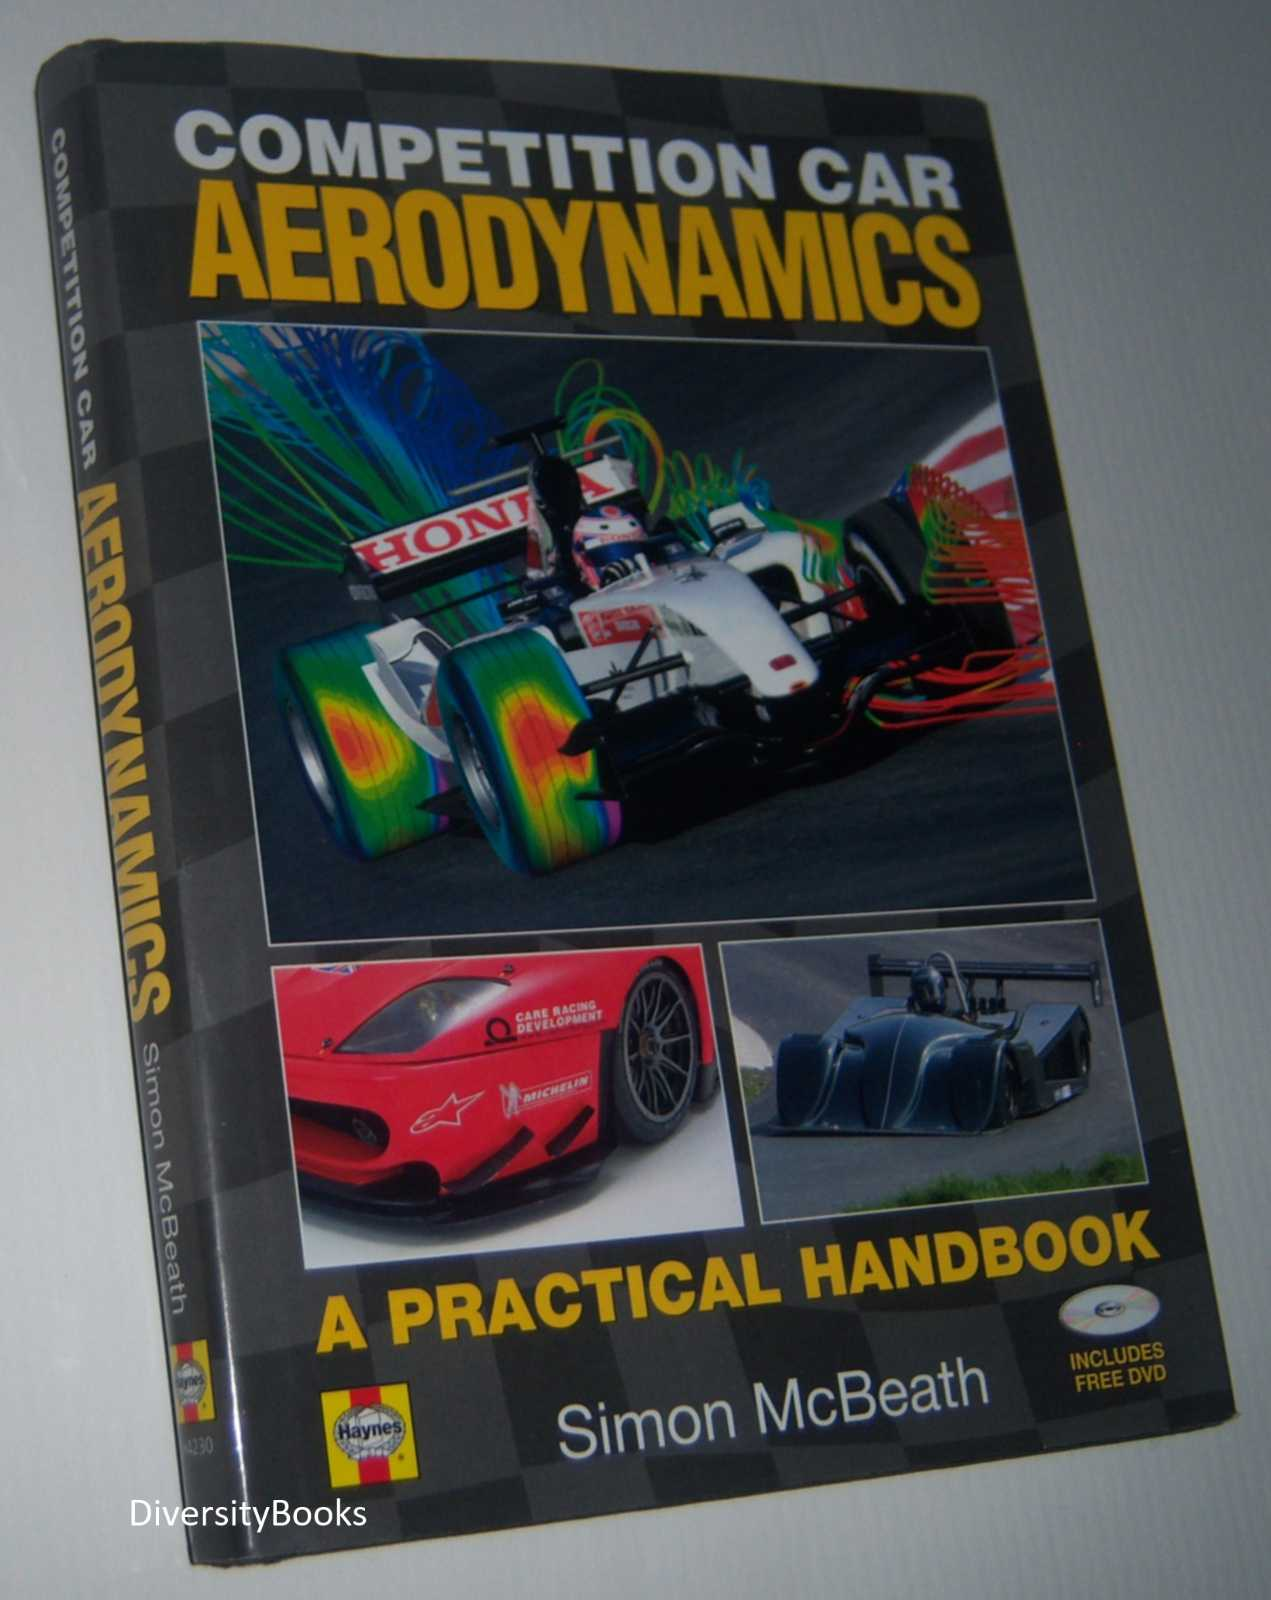 Image for COMPETITION CAR AERODYNAMICS (includes Sealed DVD - Region Not Stipulated)